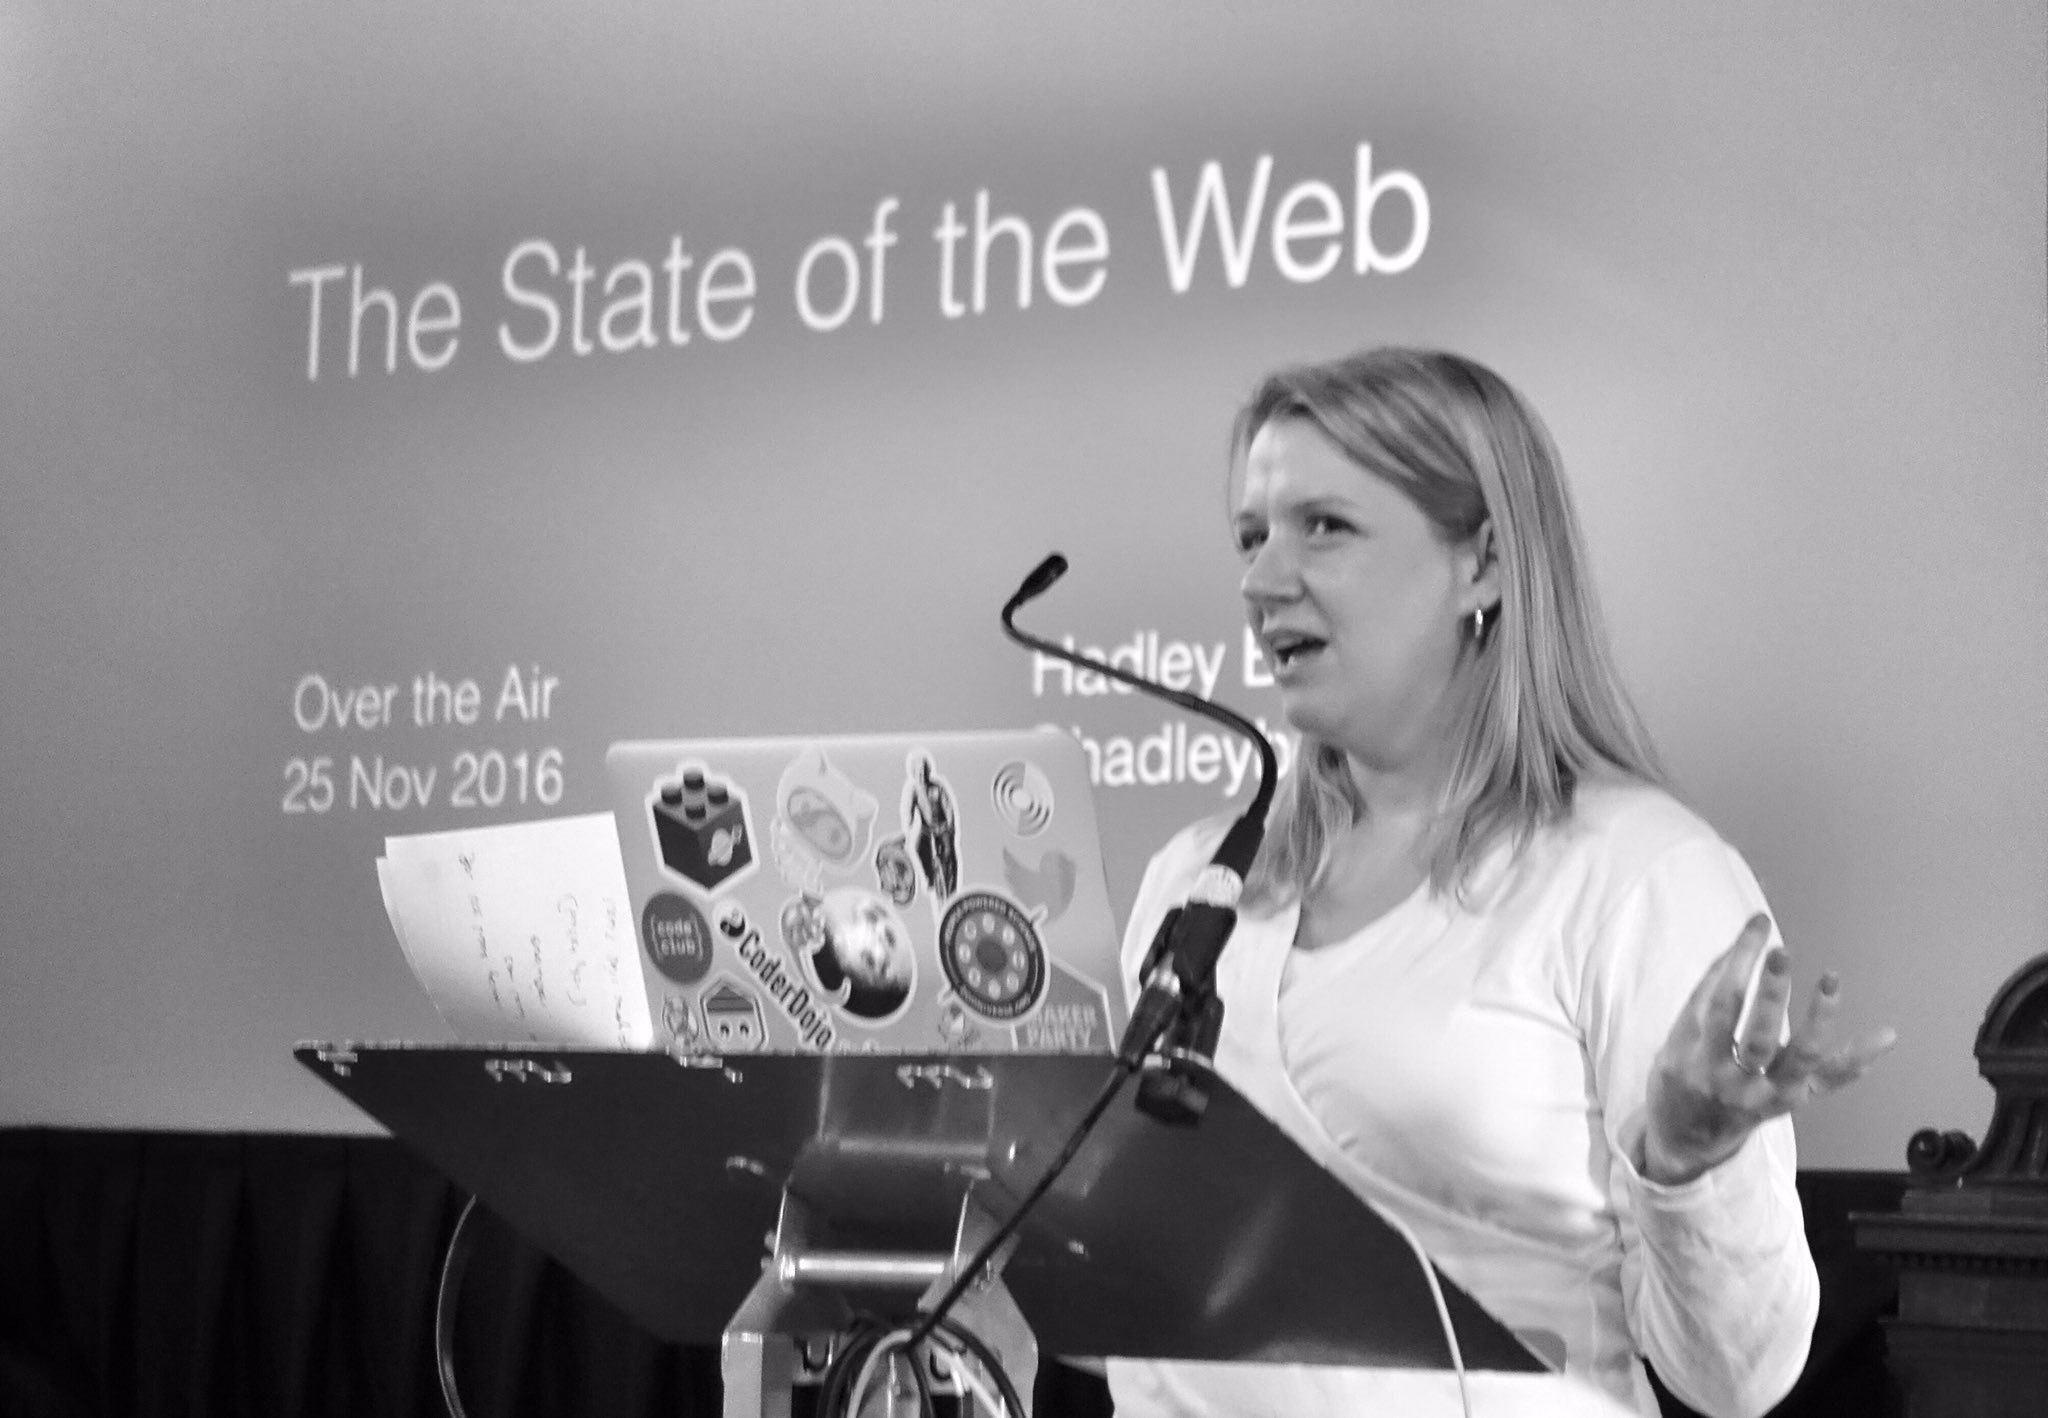 Photo of Hadley at a podium, in front of a slide that says State of the Web